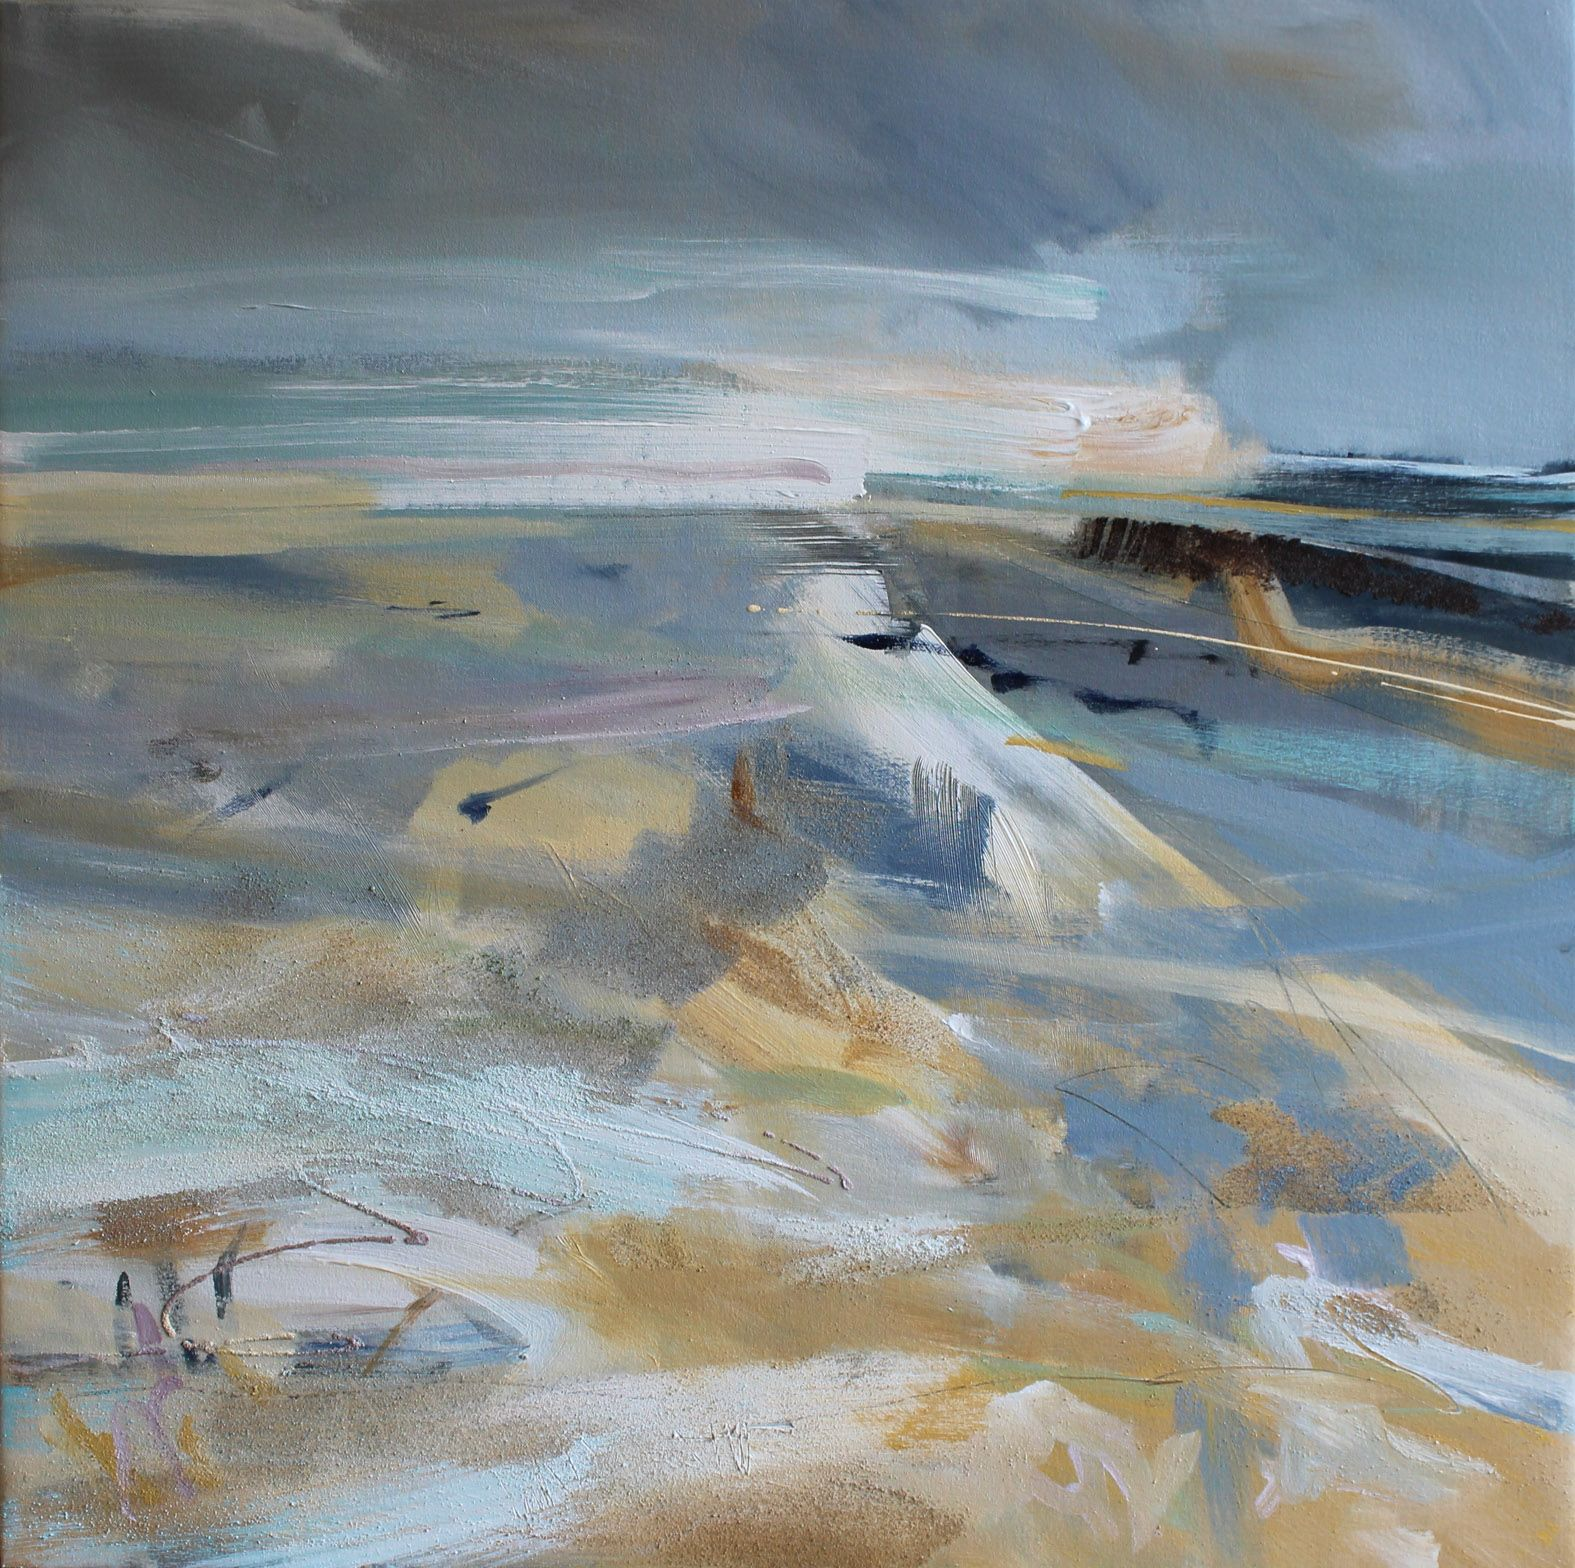 Cornish abstract beach painting